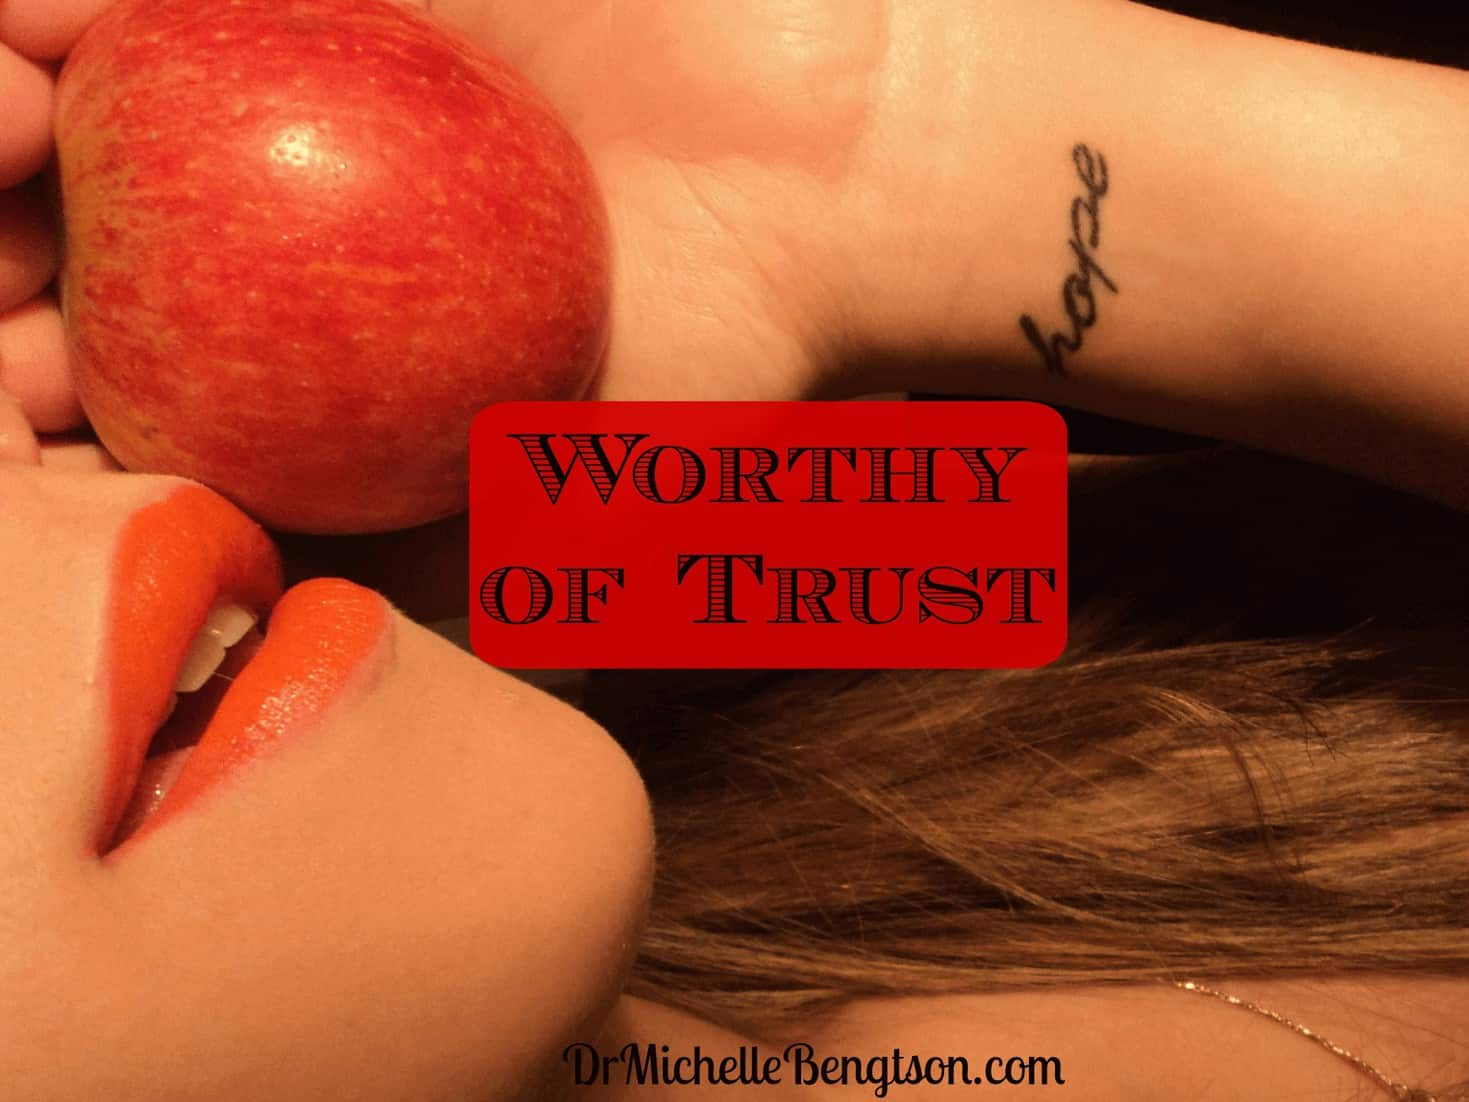 Worthy of Trust by Dr. Michelle Bengtson